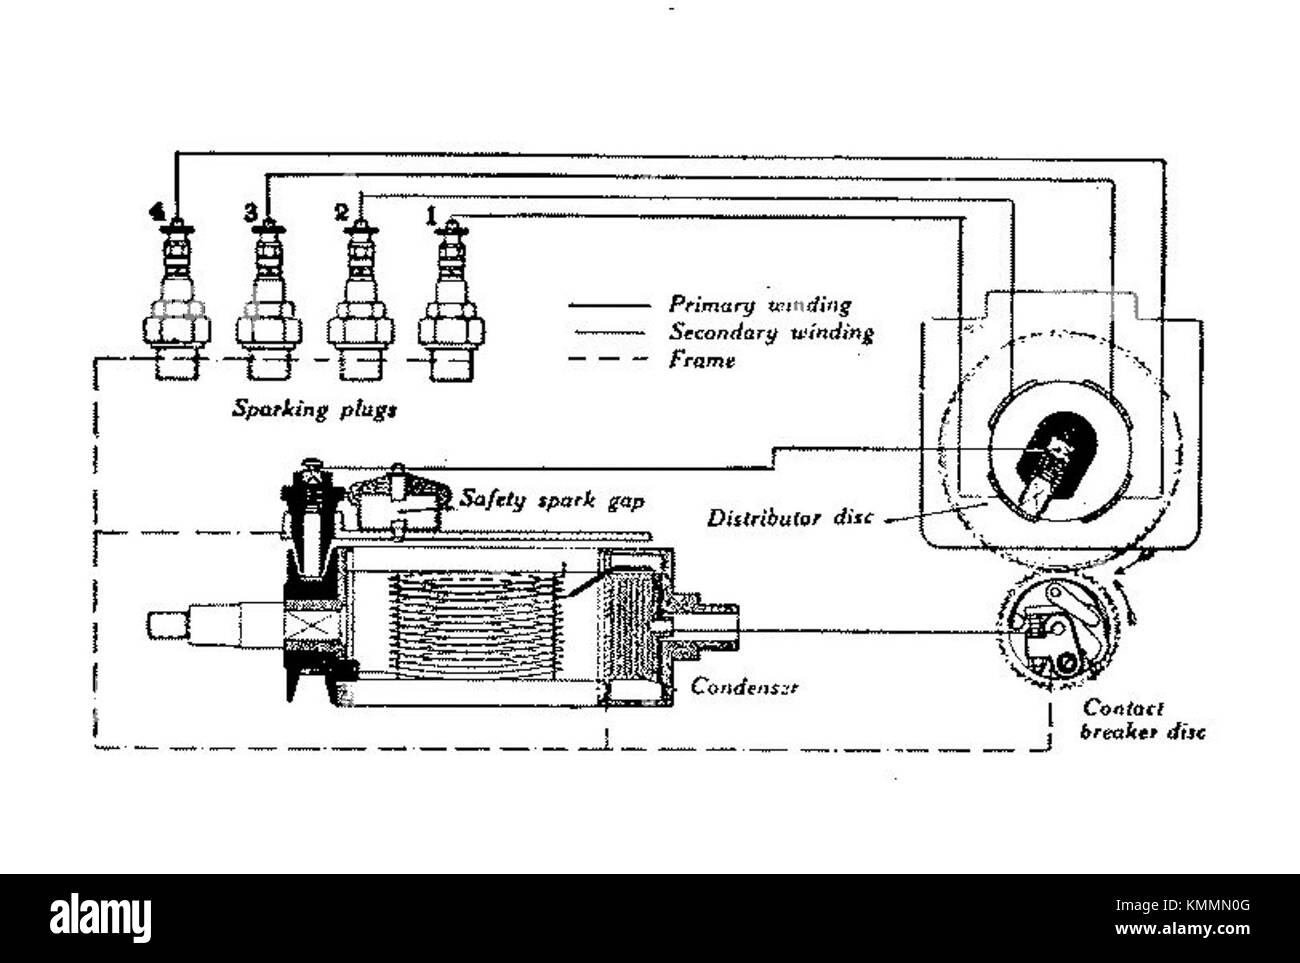 hight resolution of bosch magneto circuit army service corps training mechanical stock army service diagram